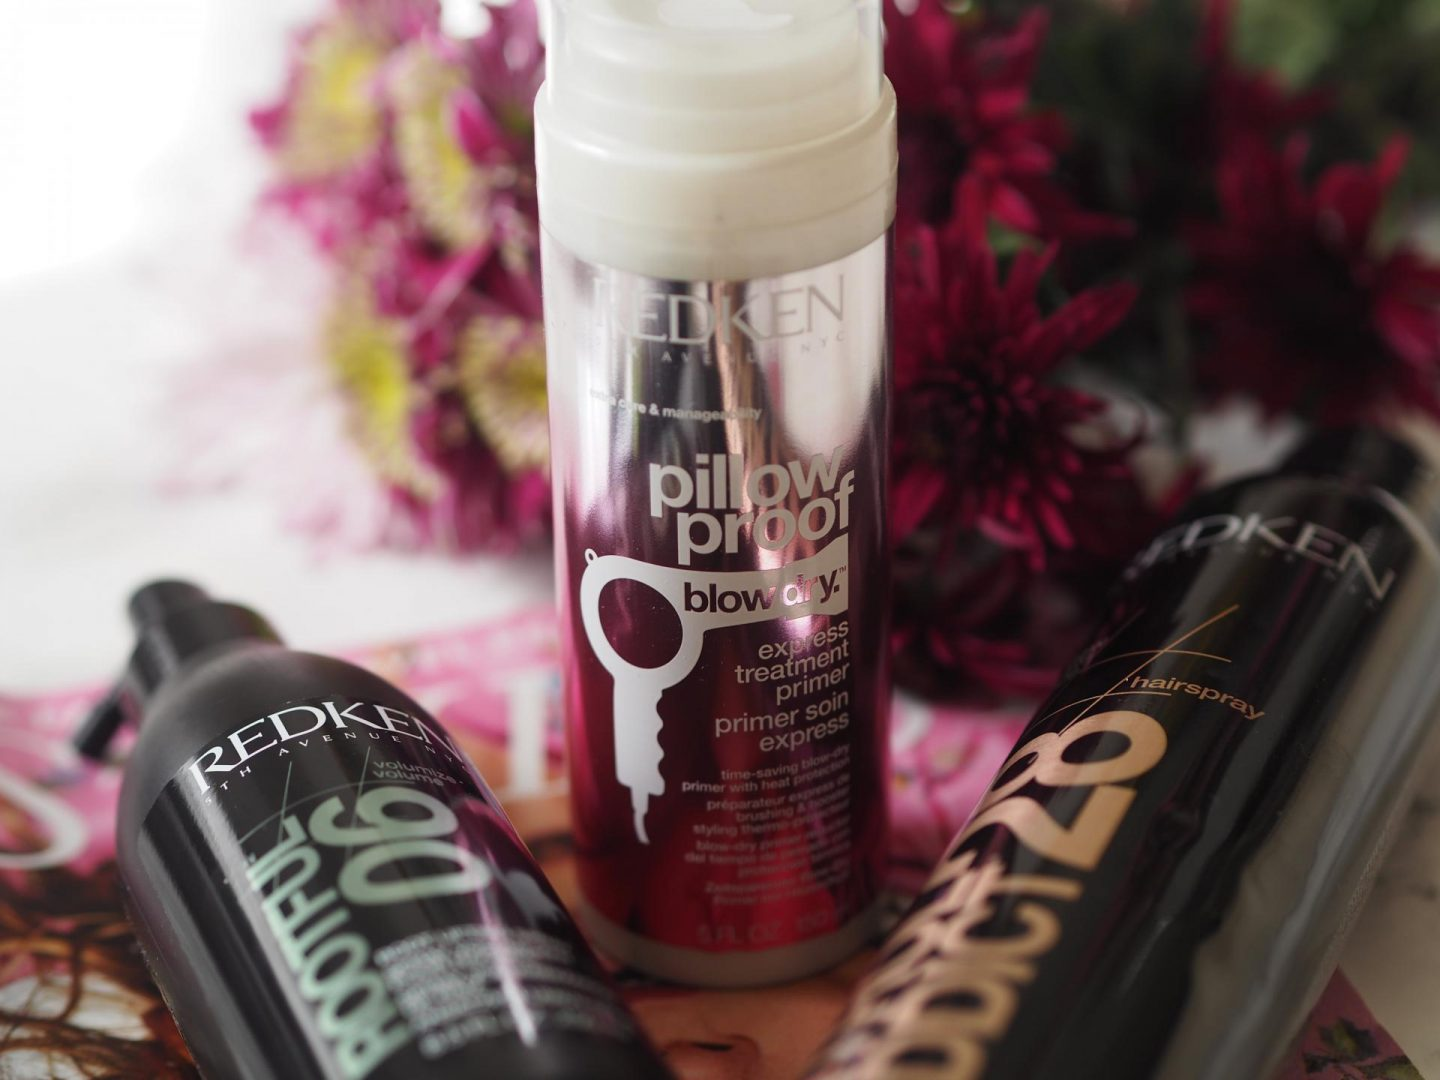 Beauty Haul - Product: Redken Pillow Proof Blowdry Express Treatment Primer Cream